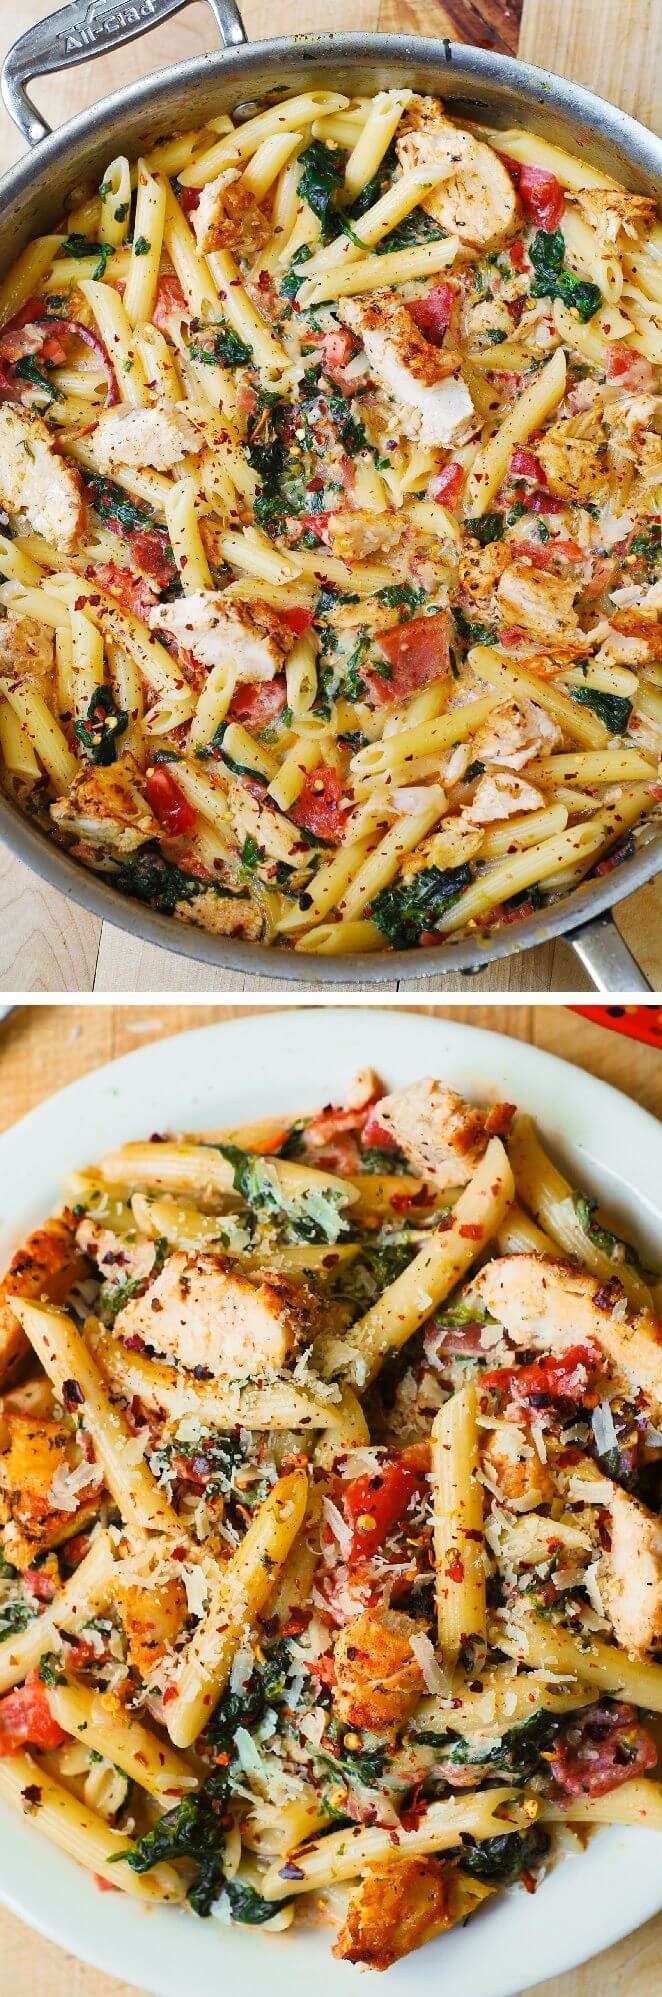 Chicken and Bacon Pasta with Spinach and Tomatoes in Garlic Cream Sauce.